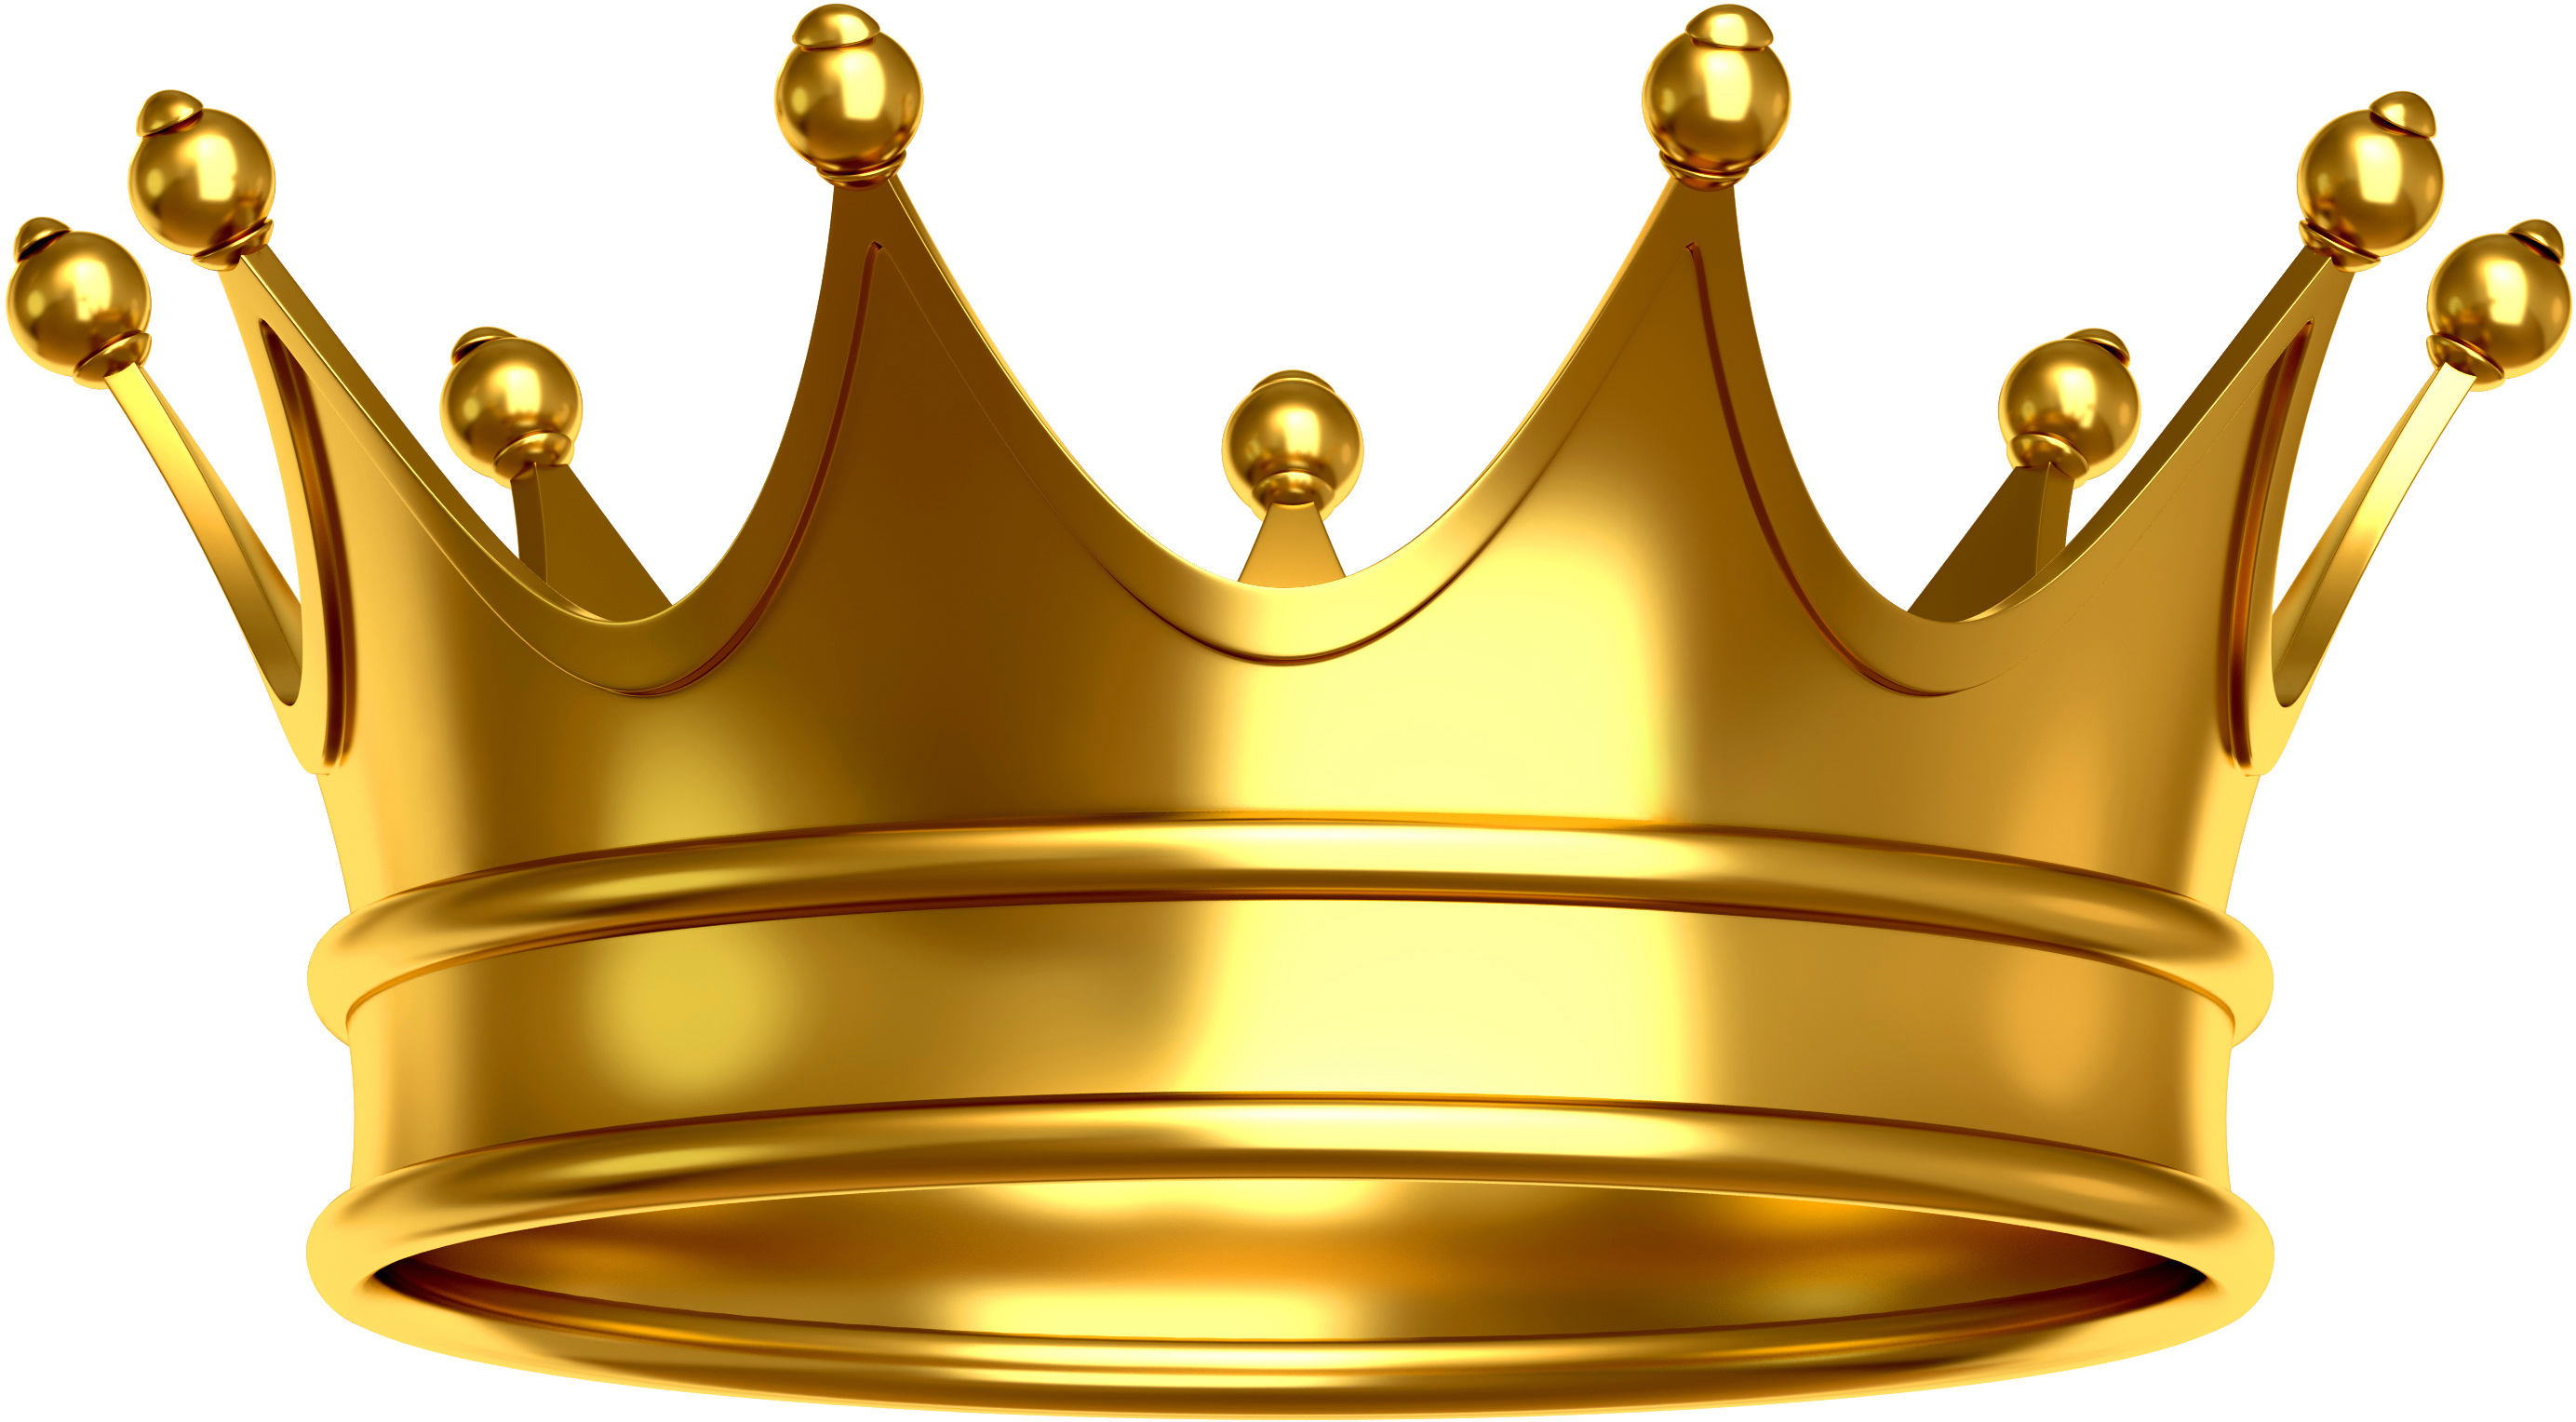 Real Crown Png image #29926